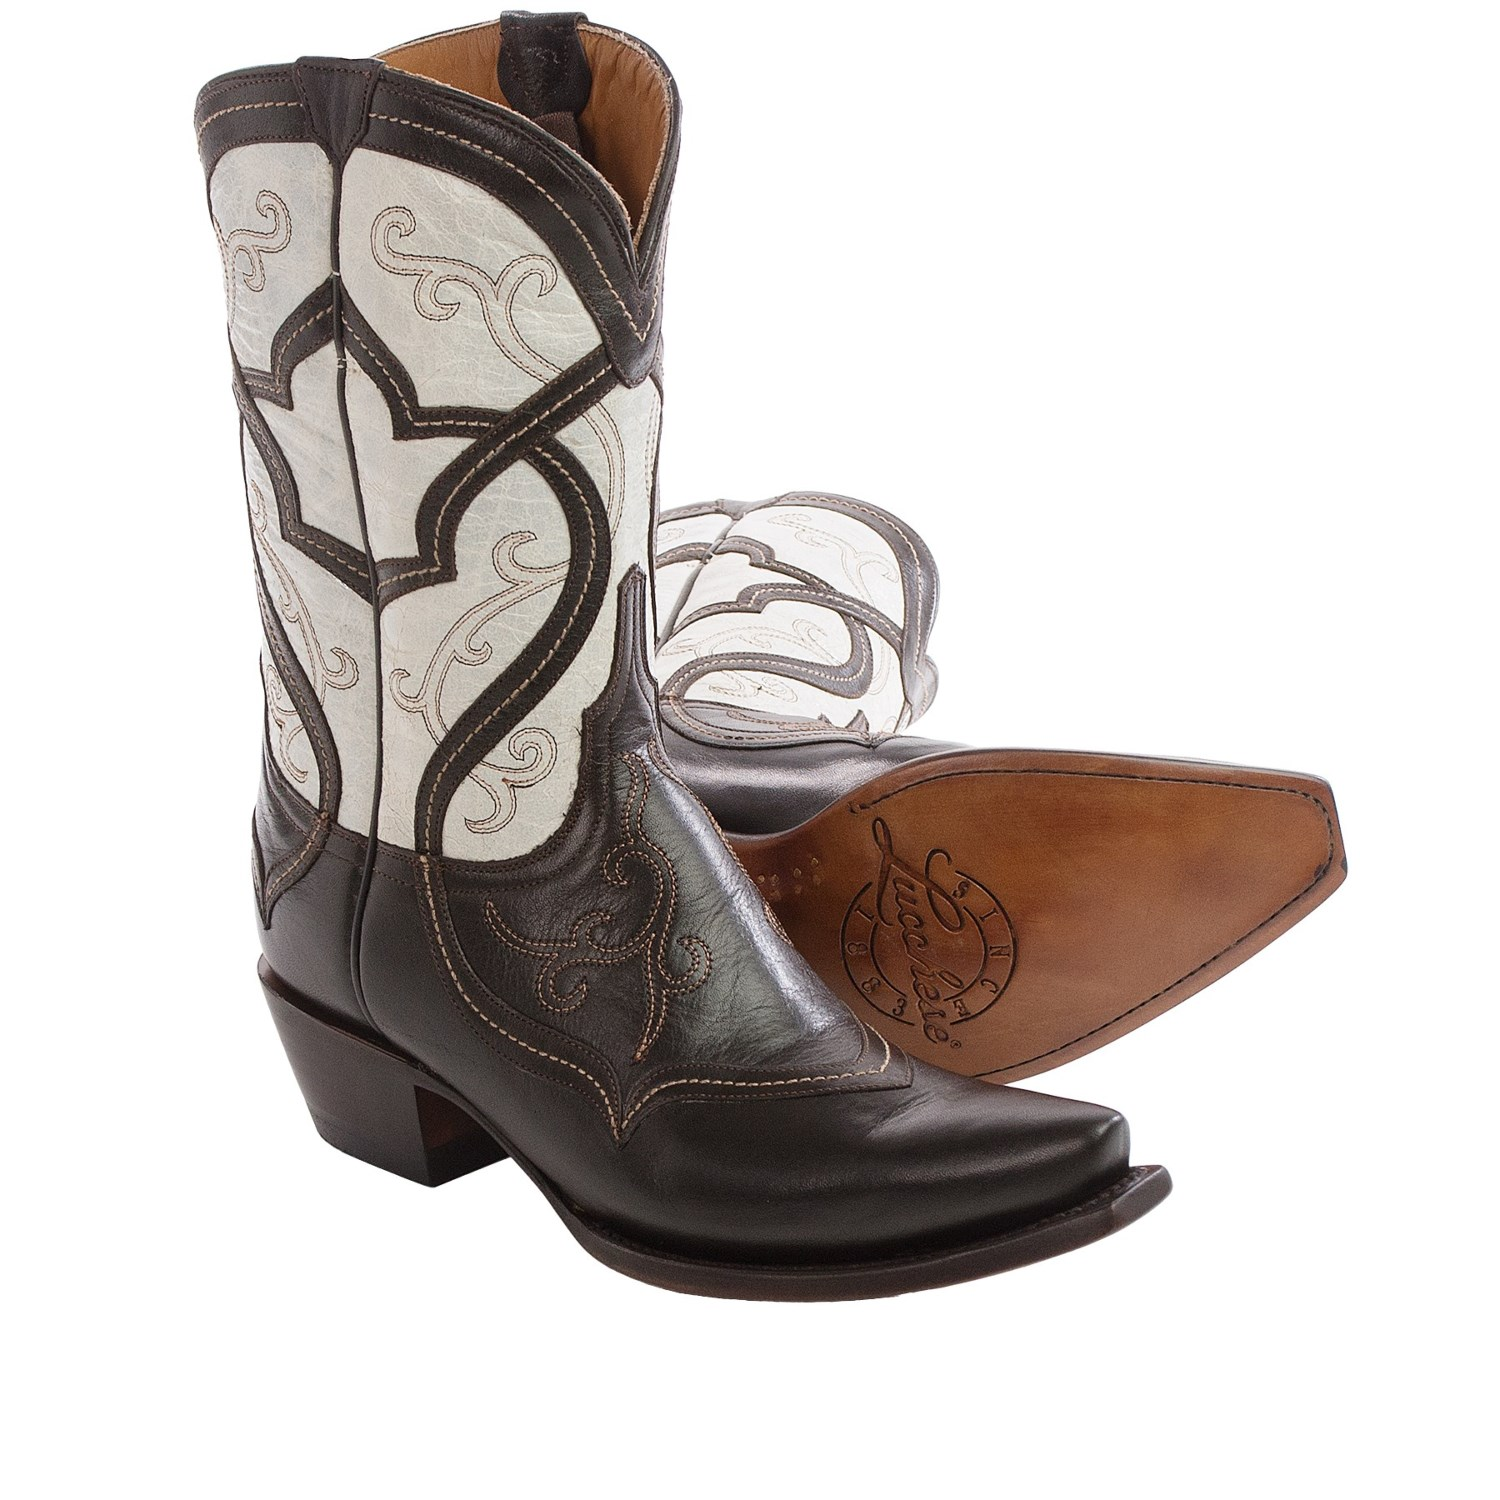 Putting shackles onto cowboyboots